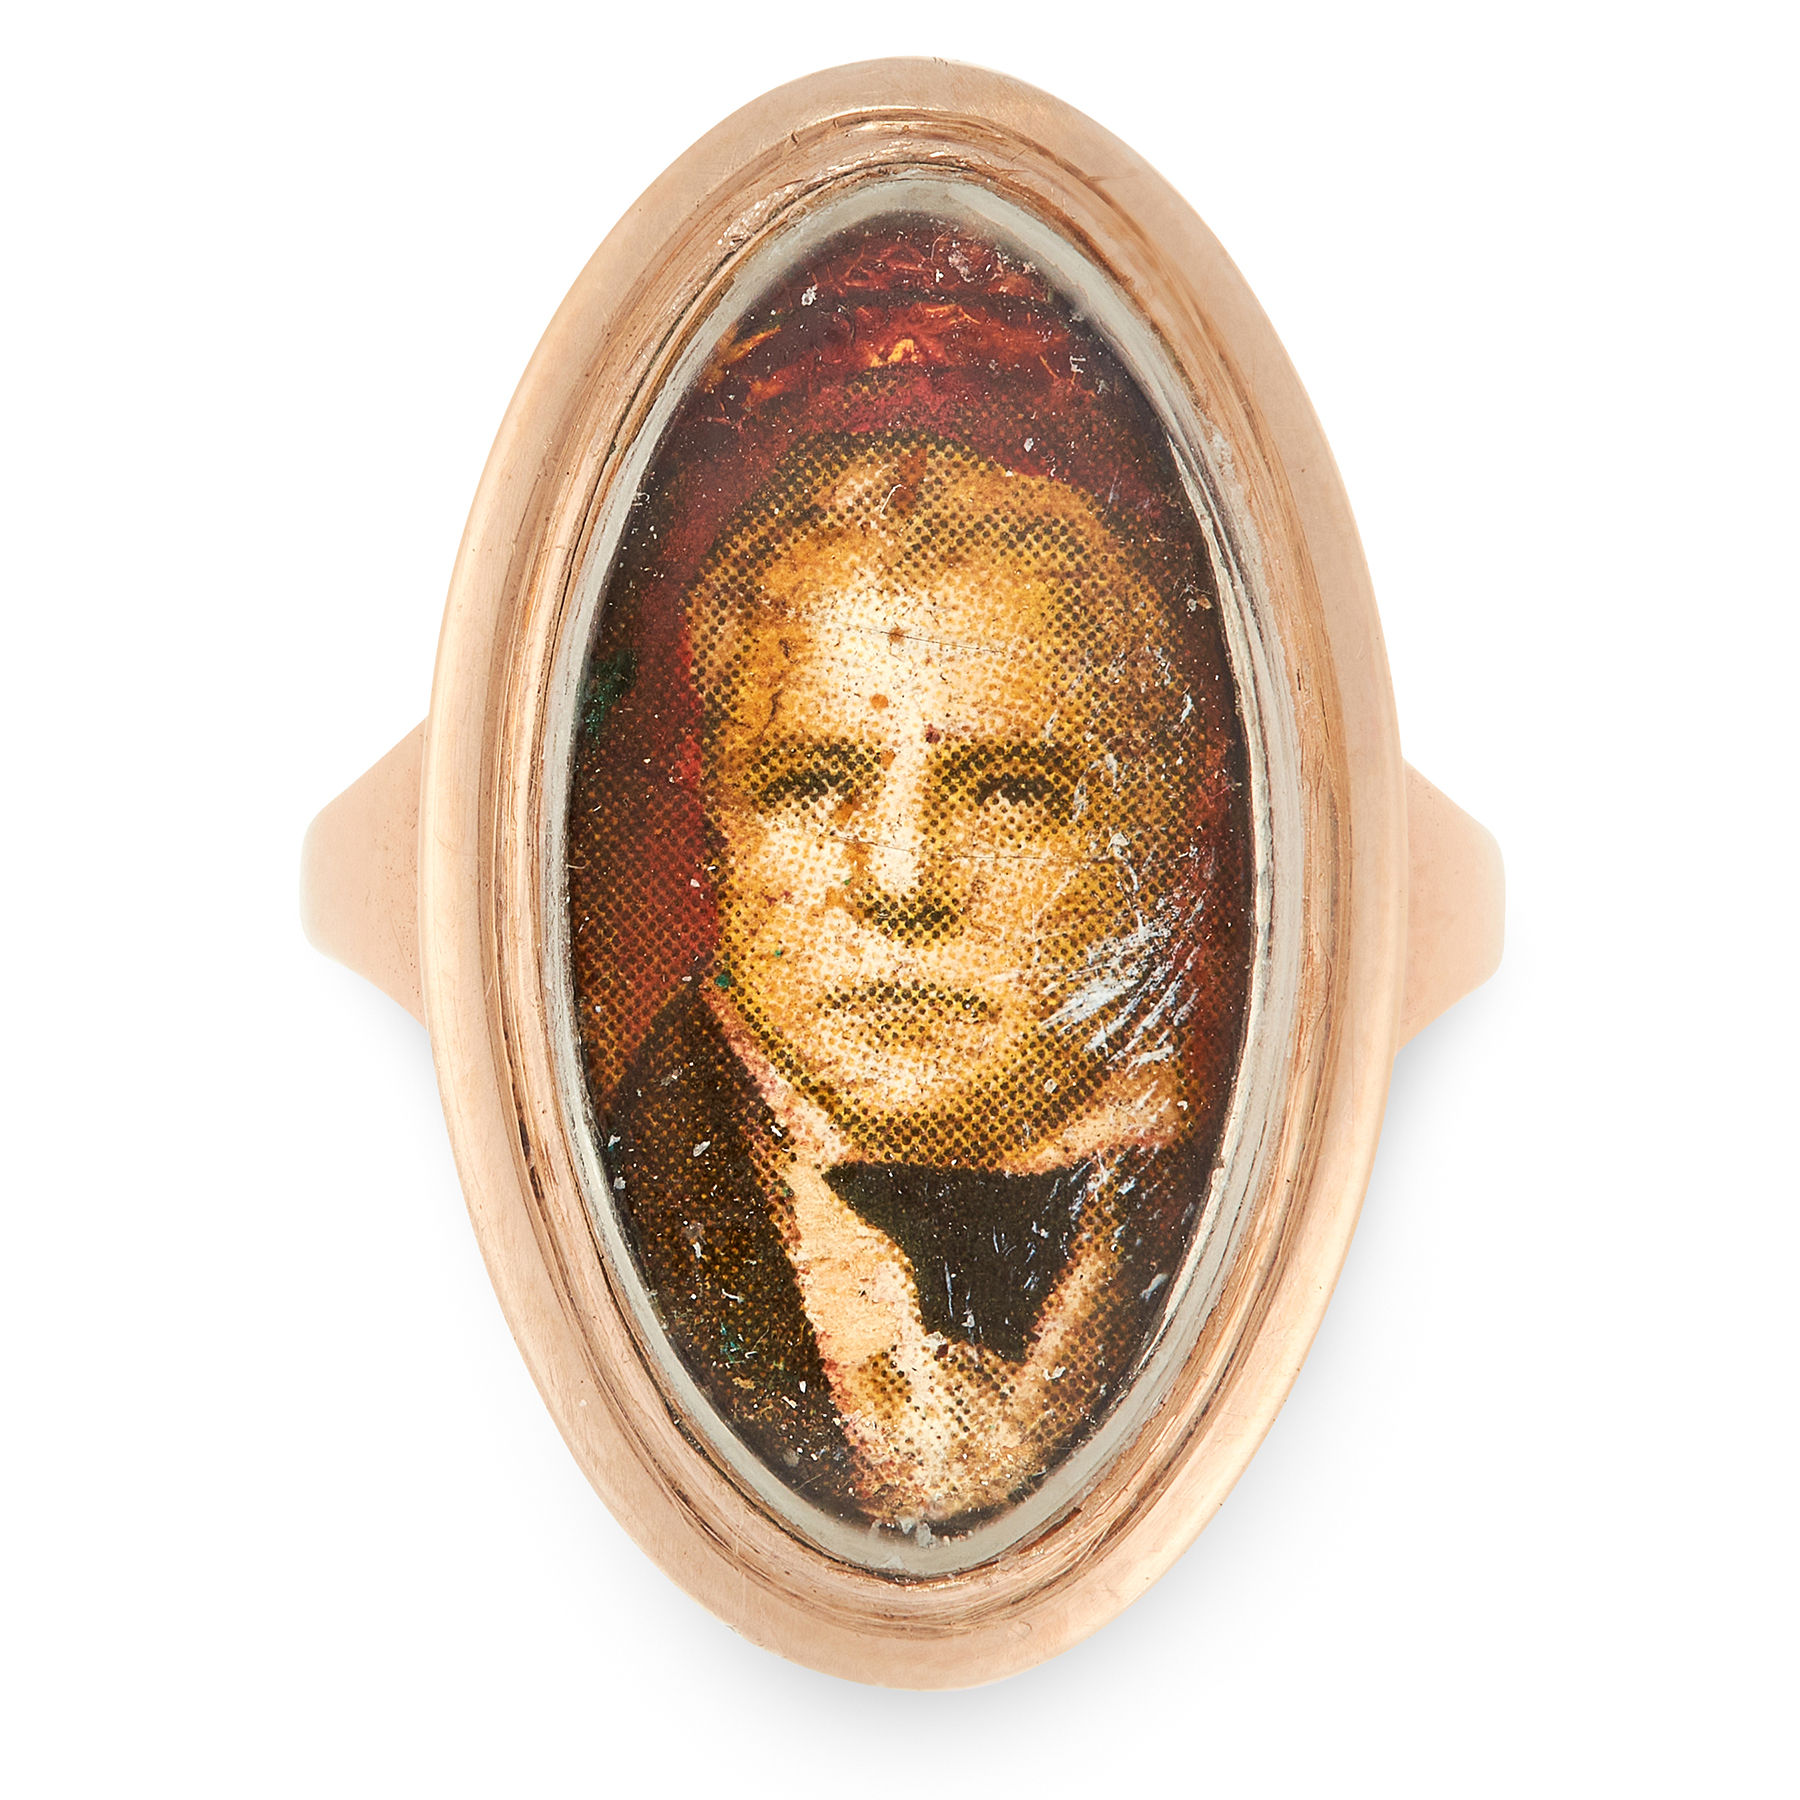 AN ANTIQUE WALTER SCOTT PORTRAIT MINIATURE MOURNING RING in yellow gold, the elongated face is set